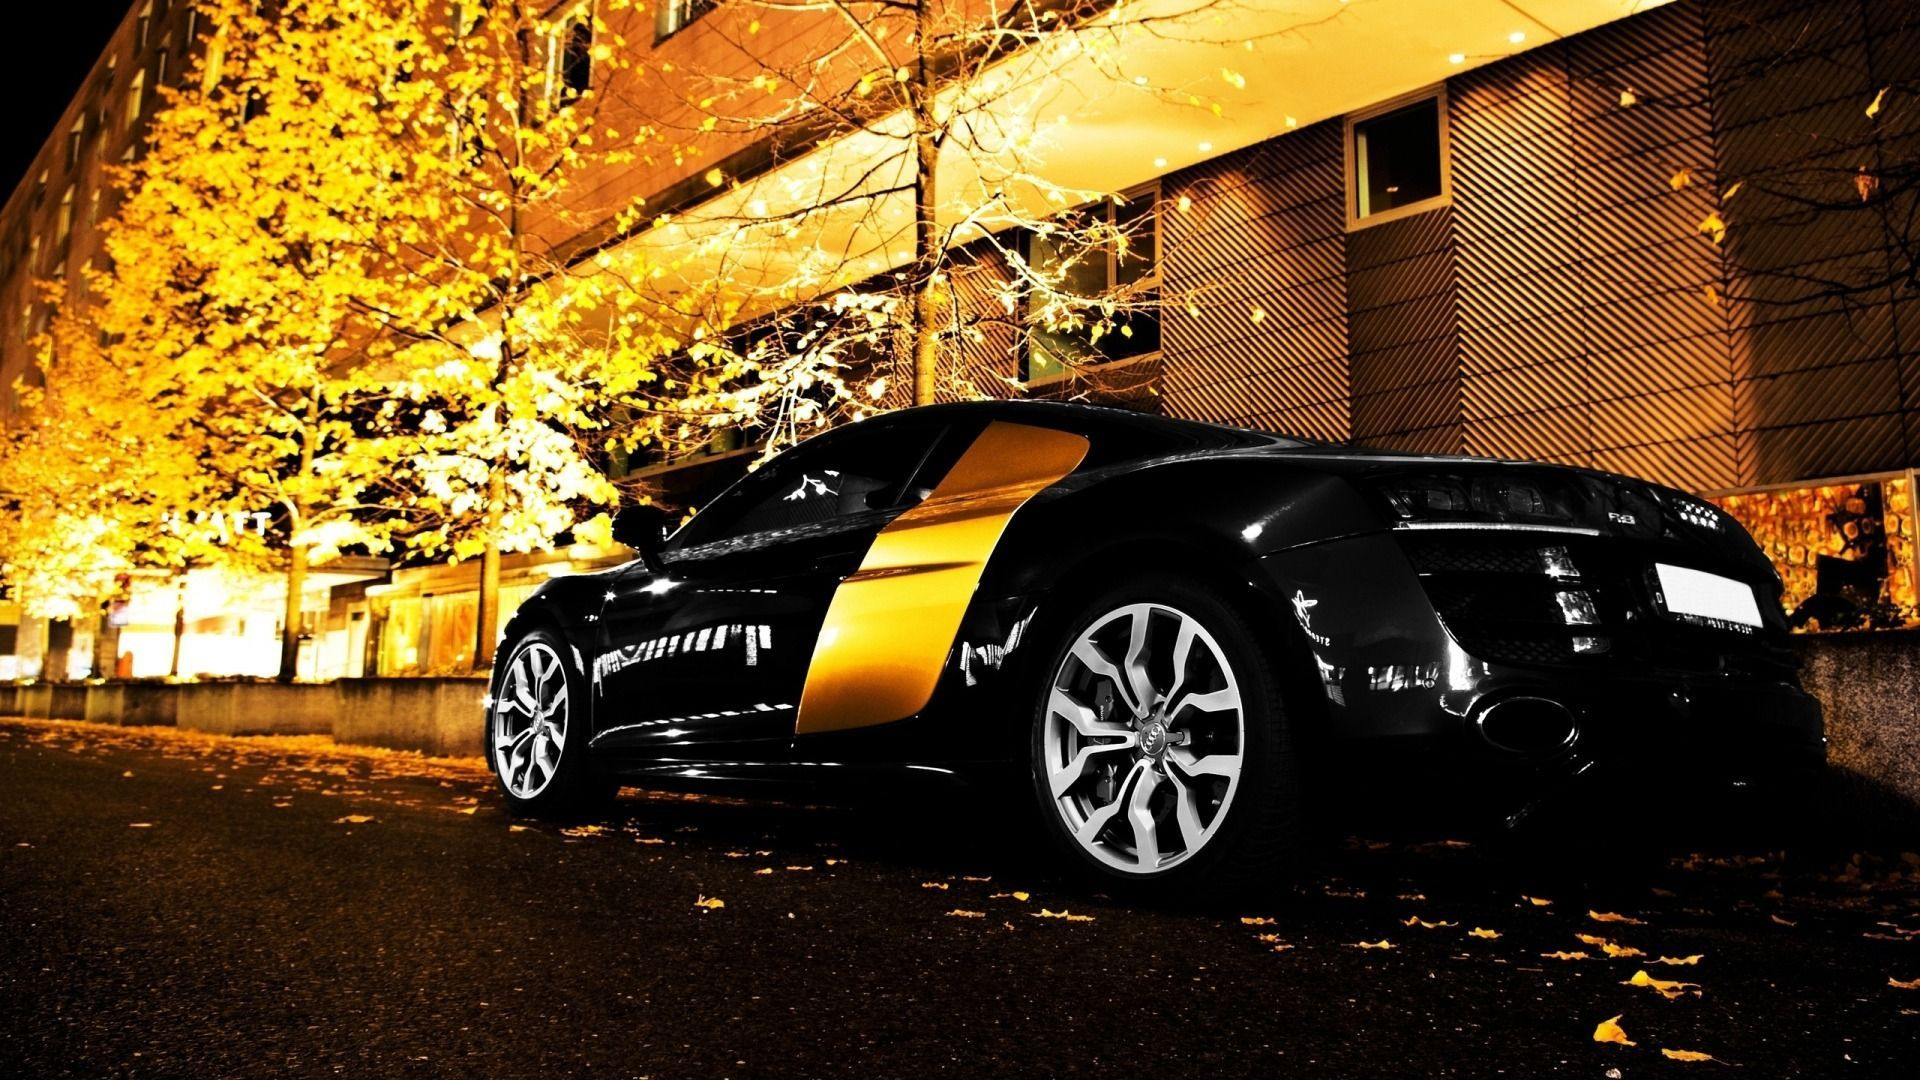 Sport Car Hd Wallpapers 1920x1080 Nsx Wallpapers In 2020 Cool Car Wallpapers Hd Car Wallpapers Audi R8 Wallpaper